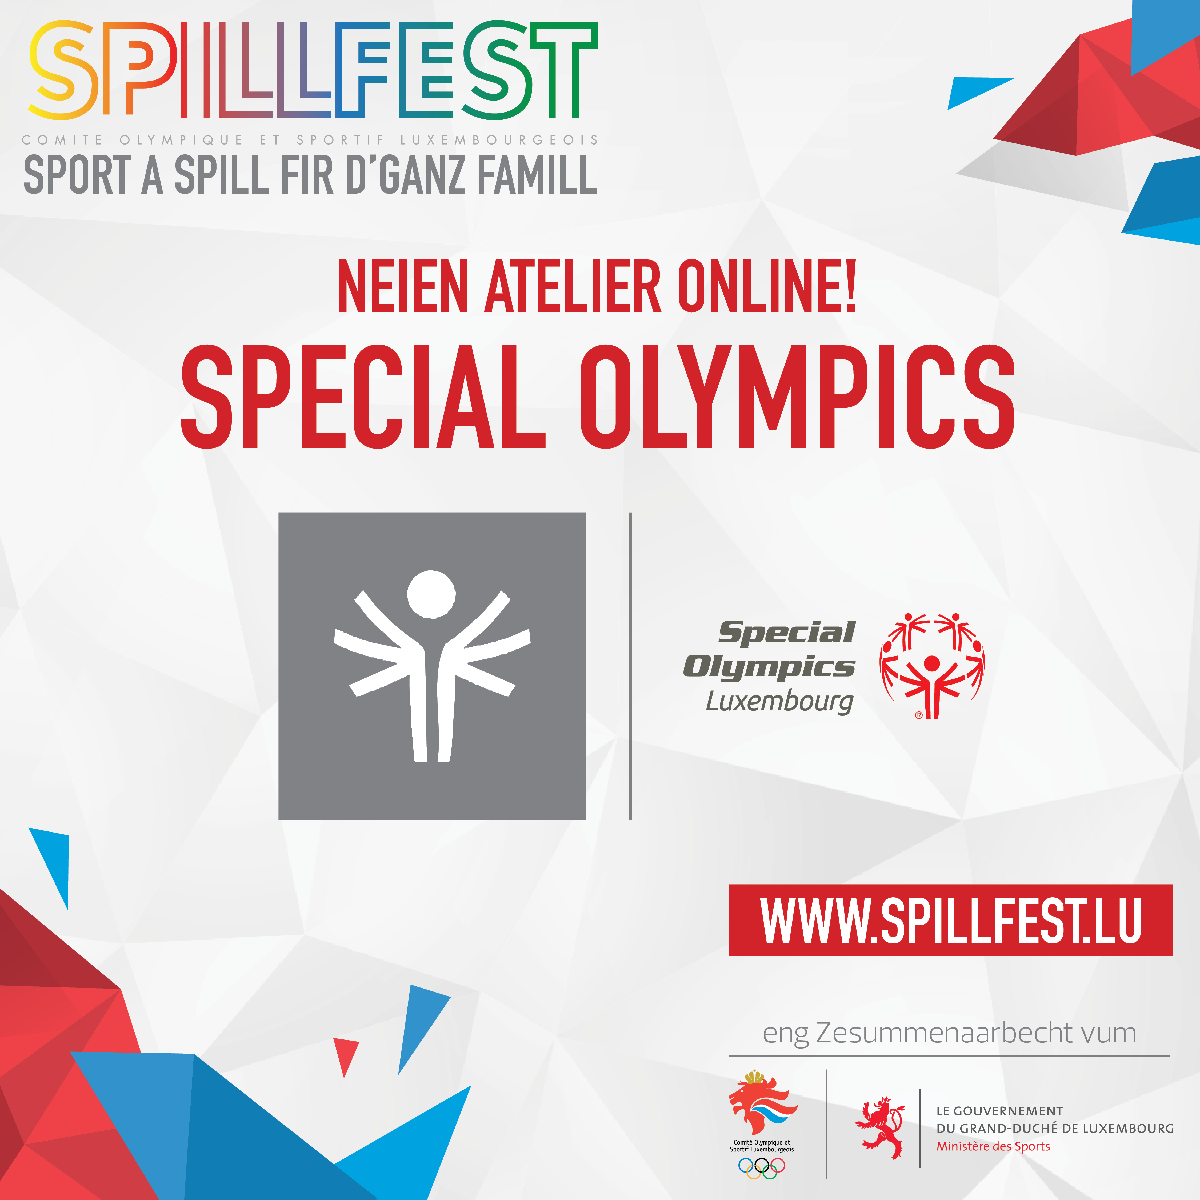 Special Olympics Luxembourg goes COSL Spillfest